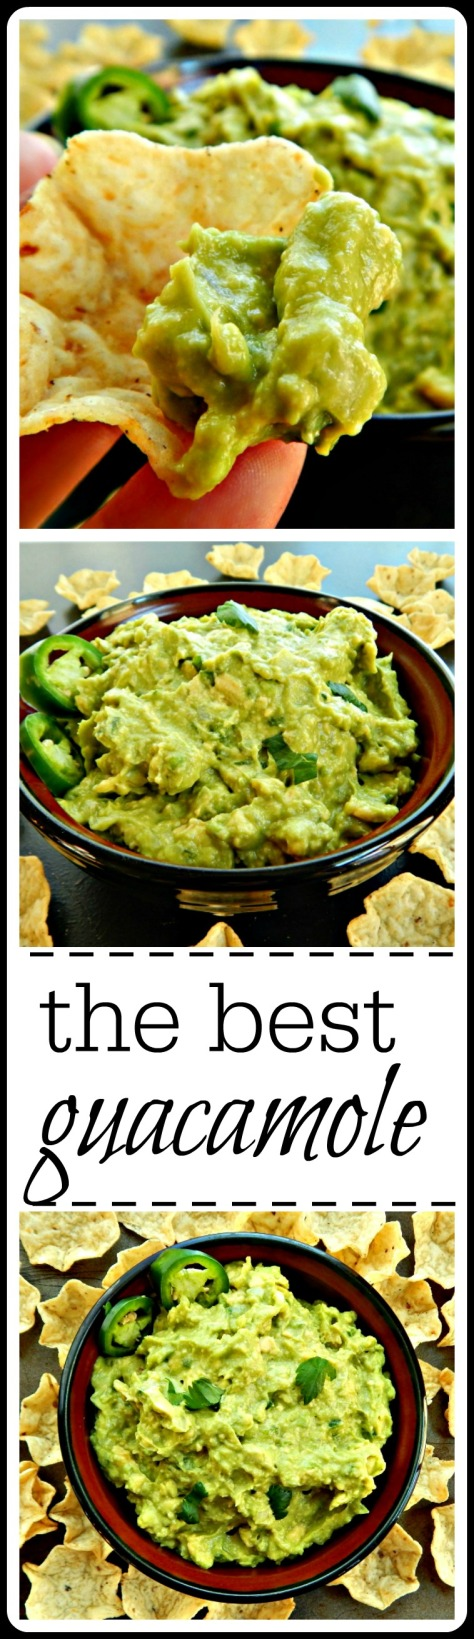 An absolute classic - the best guacamole, ever!